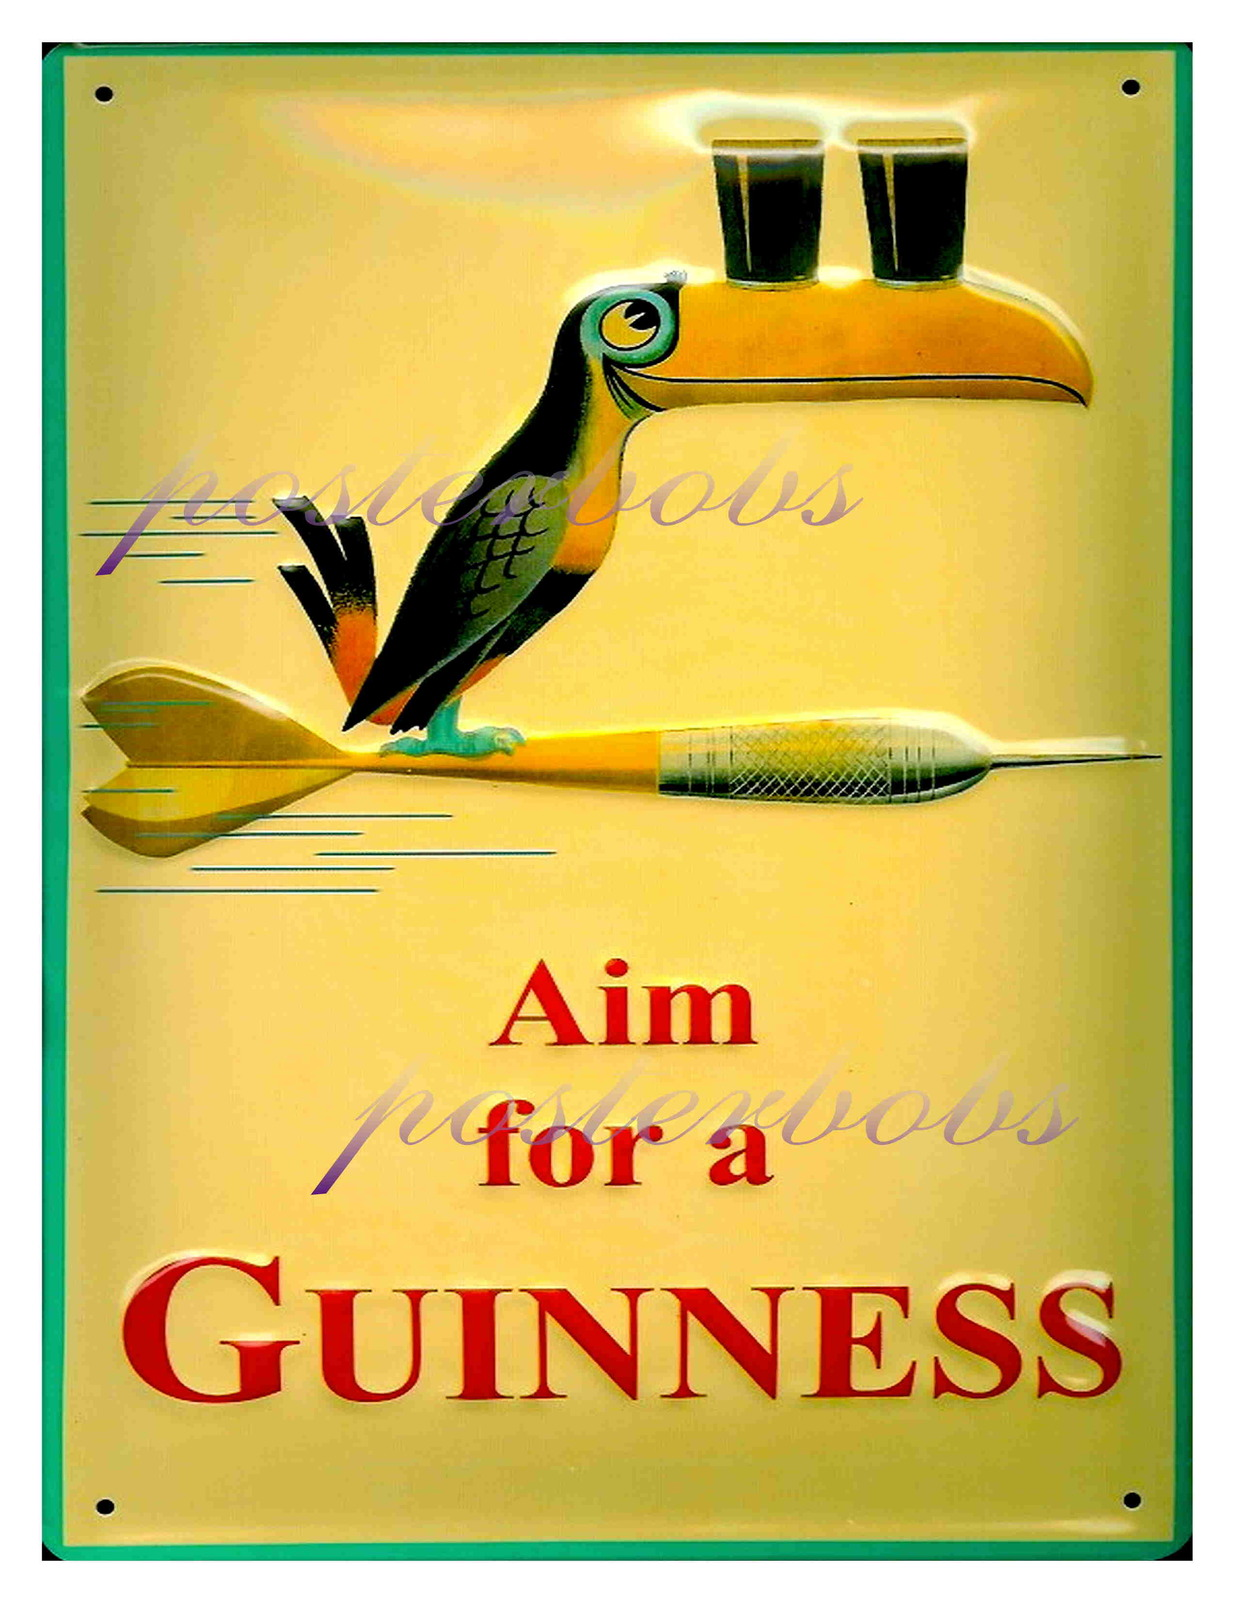 """Aim For a Guiness"" 22 x 17 inch Vintage Advertising Poster Giclee CANVAS Print"